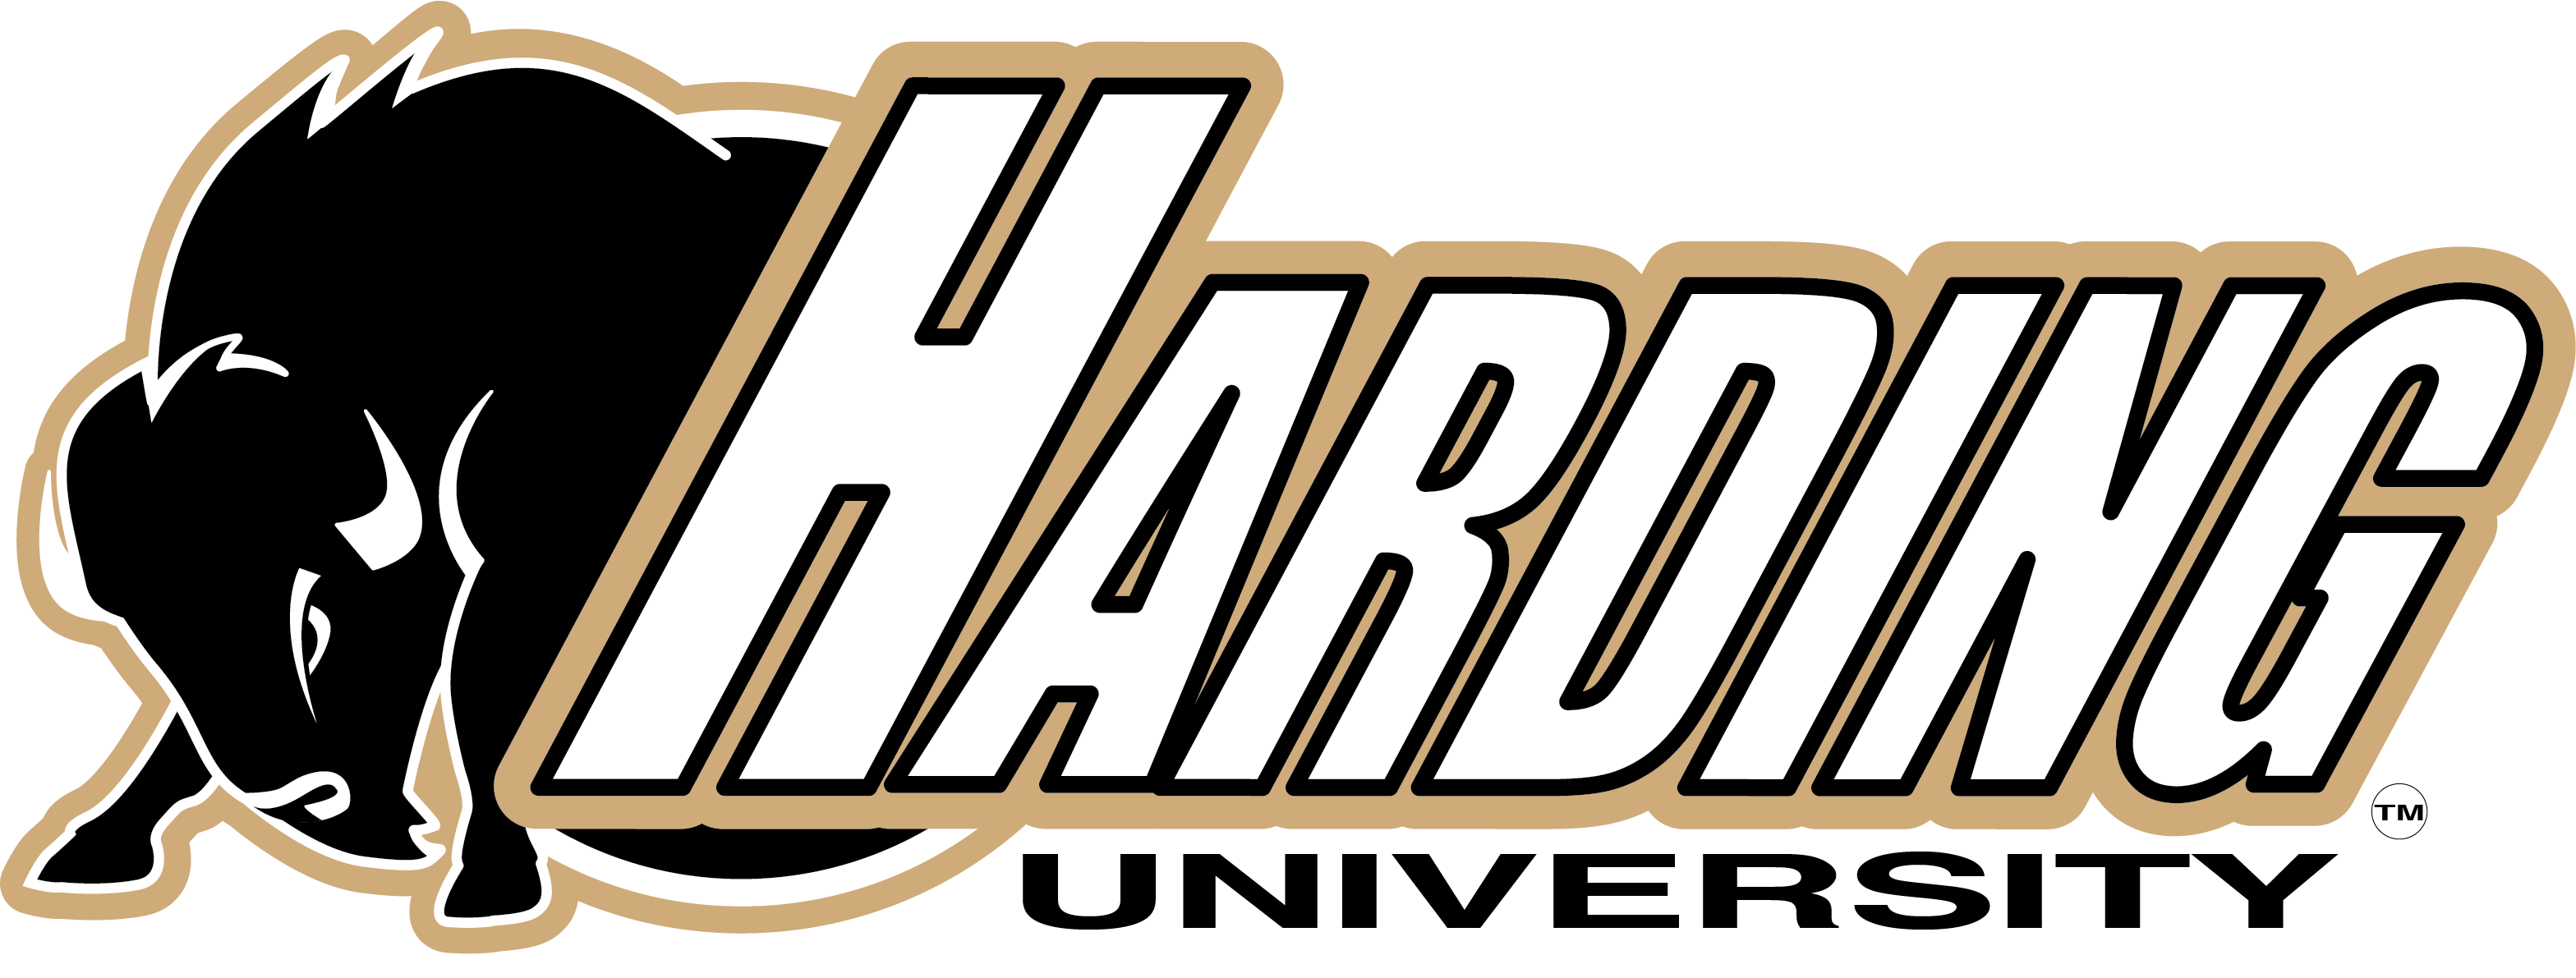 This is the logo for Harding Sports.